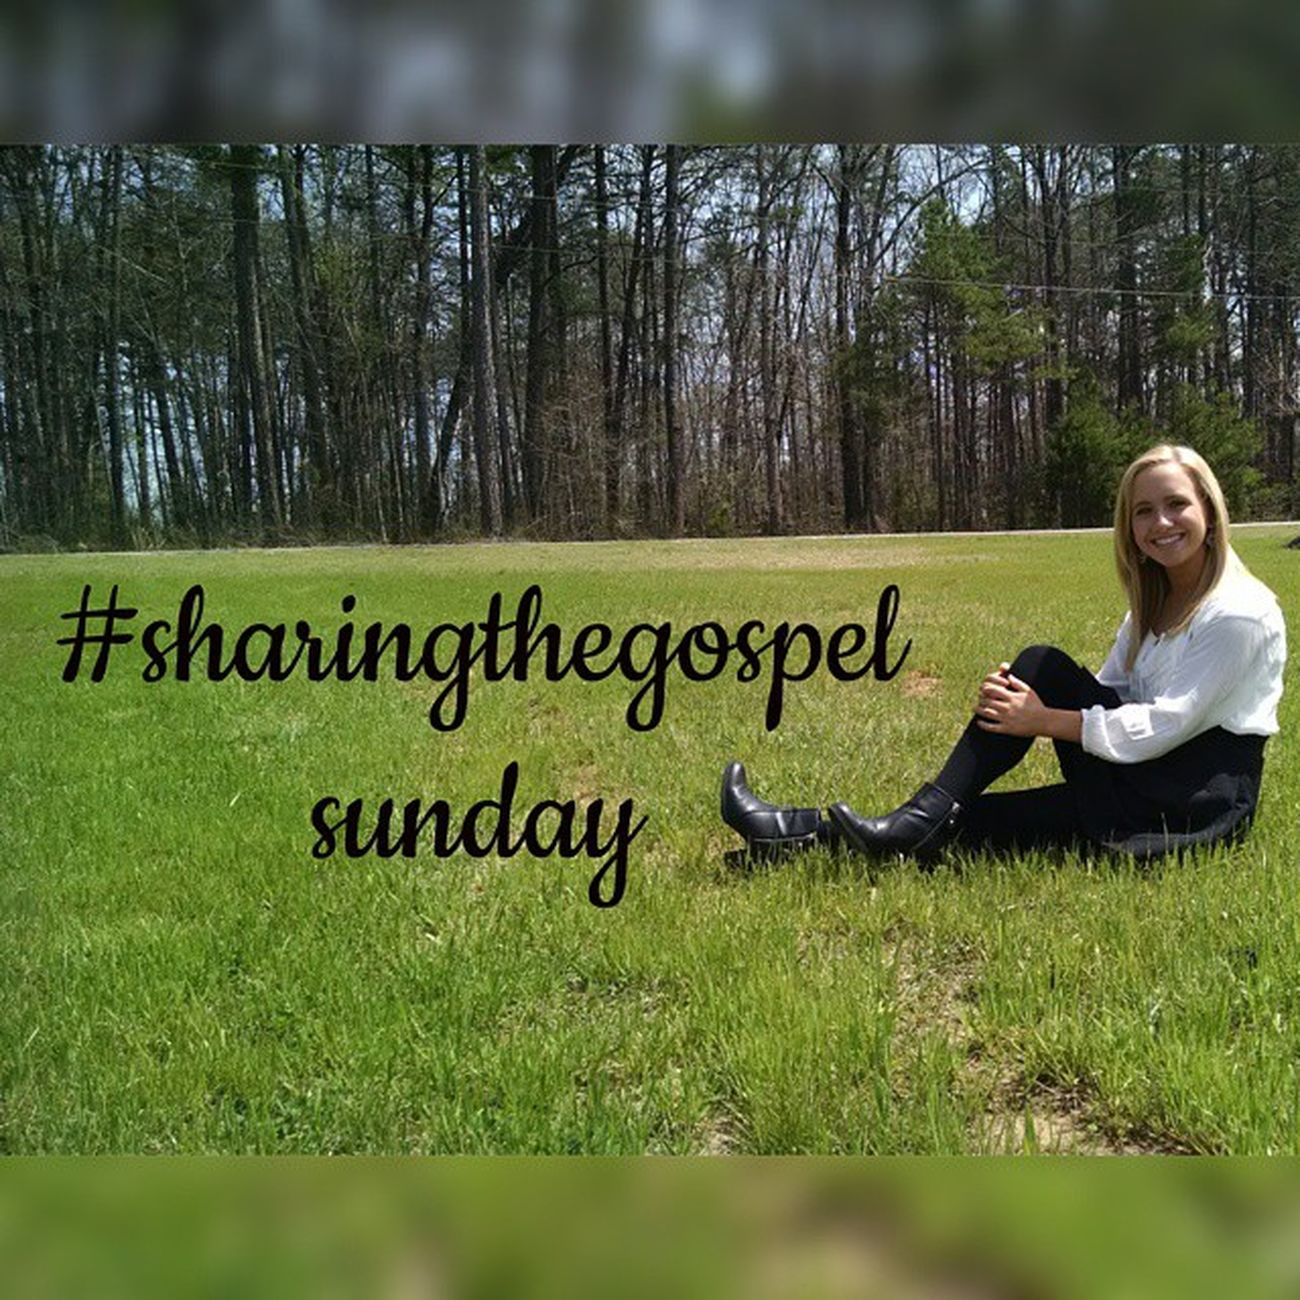 Sharing  The Gospel Sunday Sharingthegospelofjesuschrist Sharingthegospelofsunday